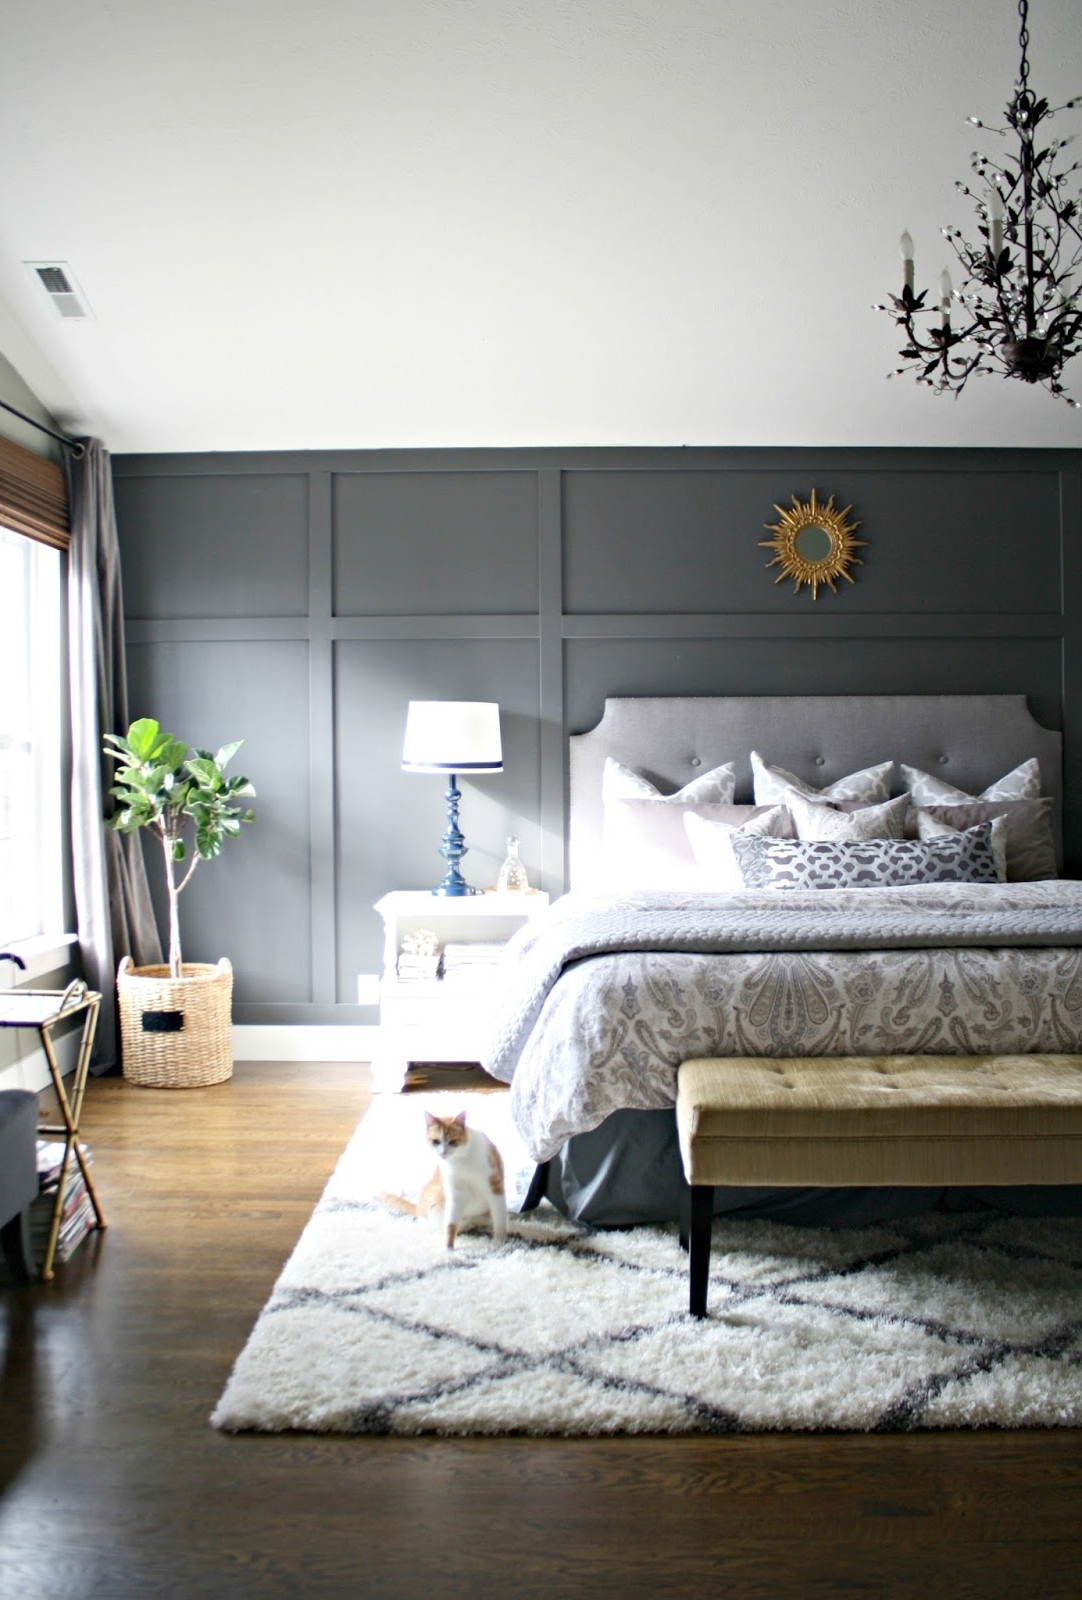 Best ideas about Accent Walls Designs . Save or Pin 15 Ideas of Wallpaper Bedroom Wall Accents Now.